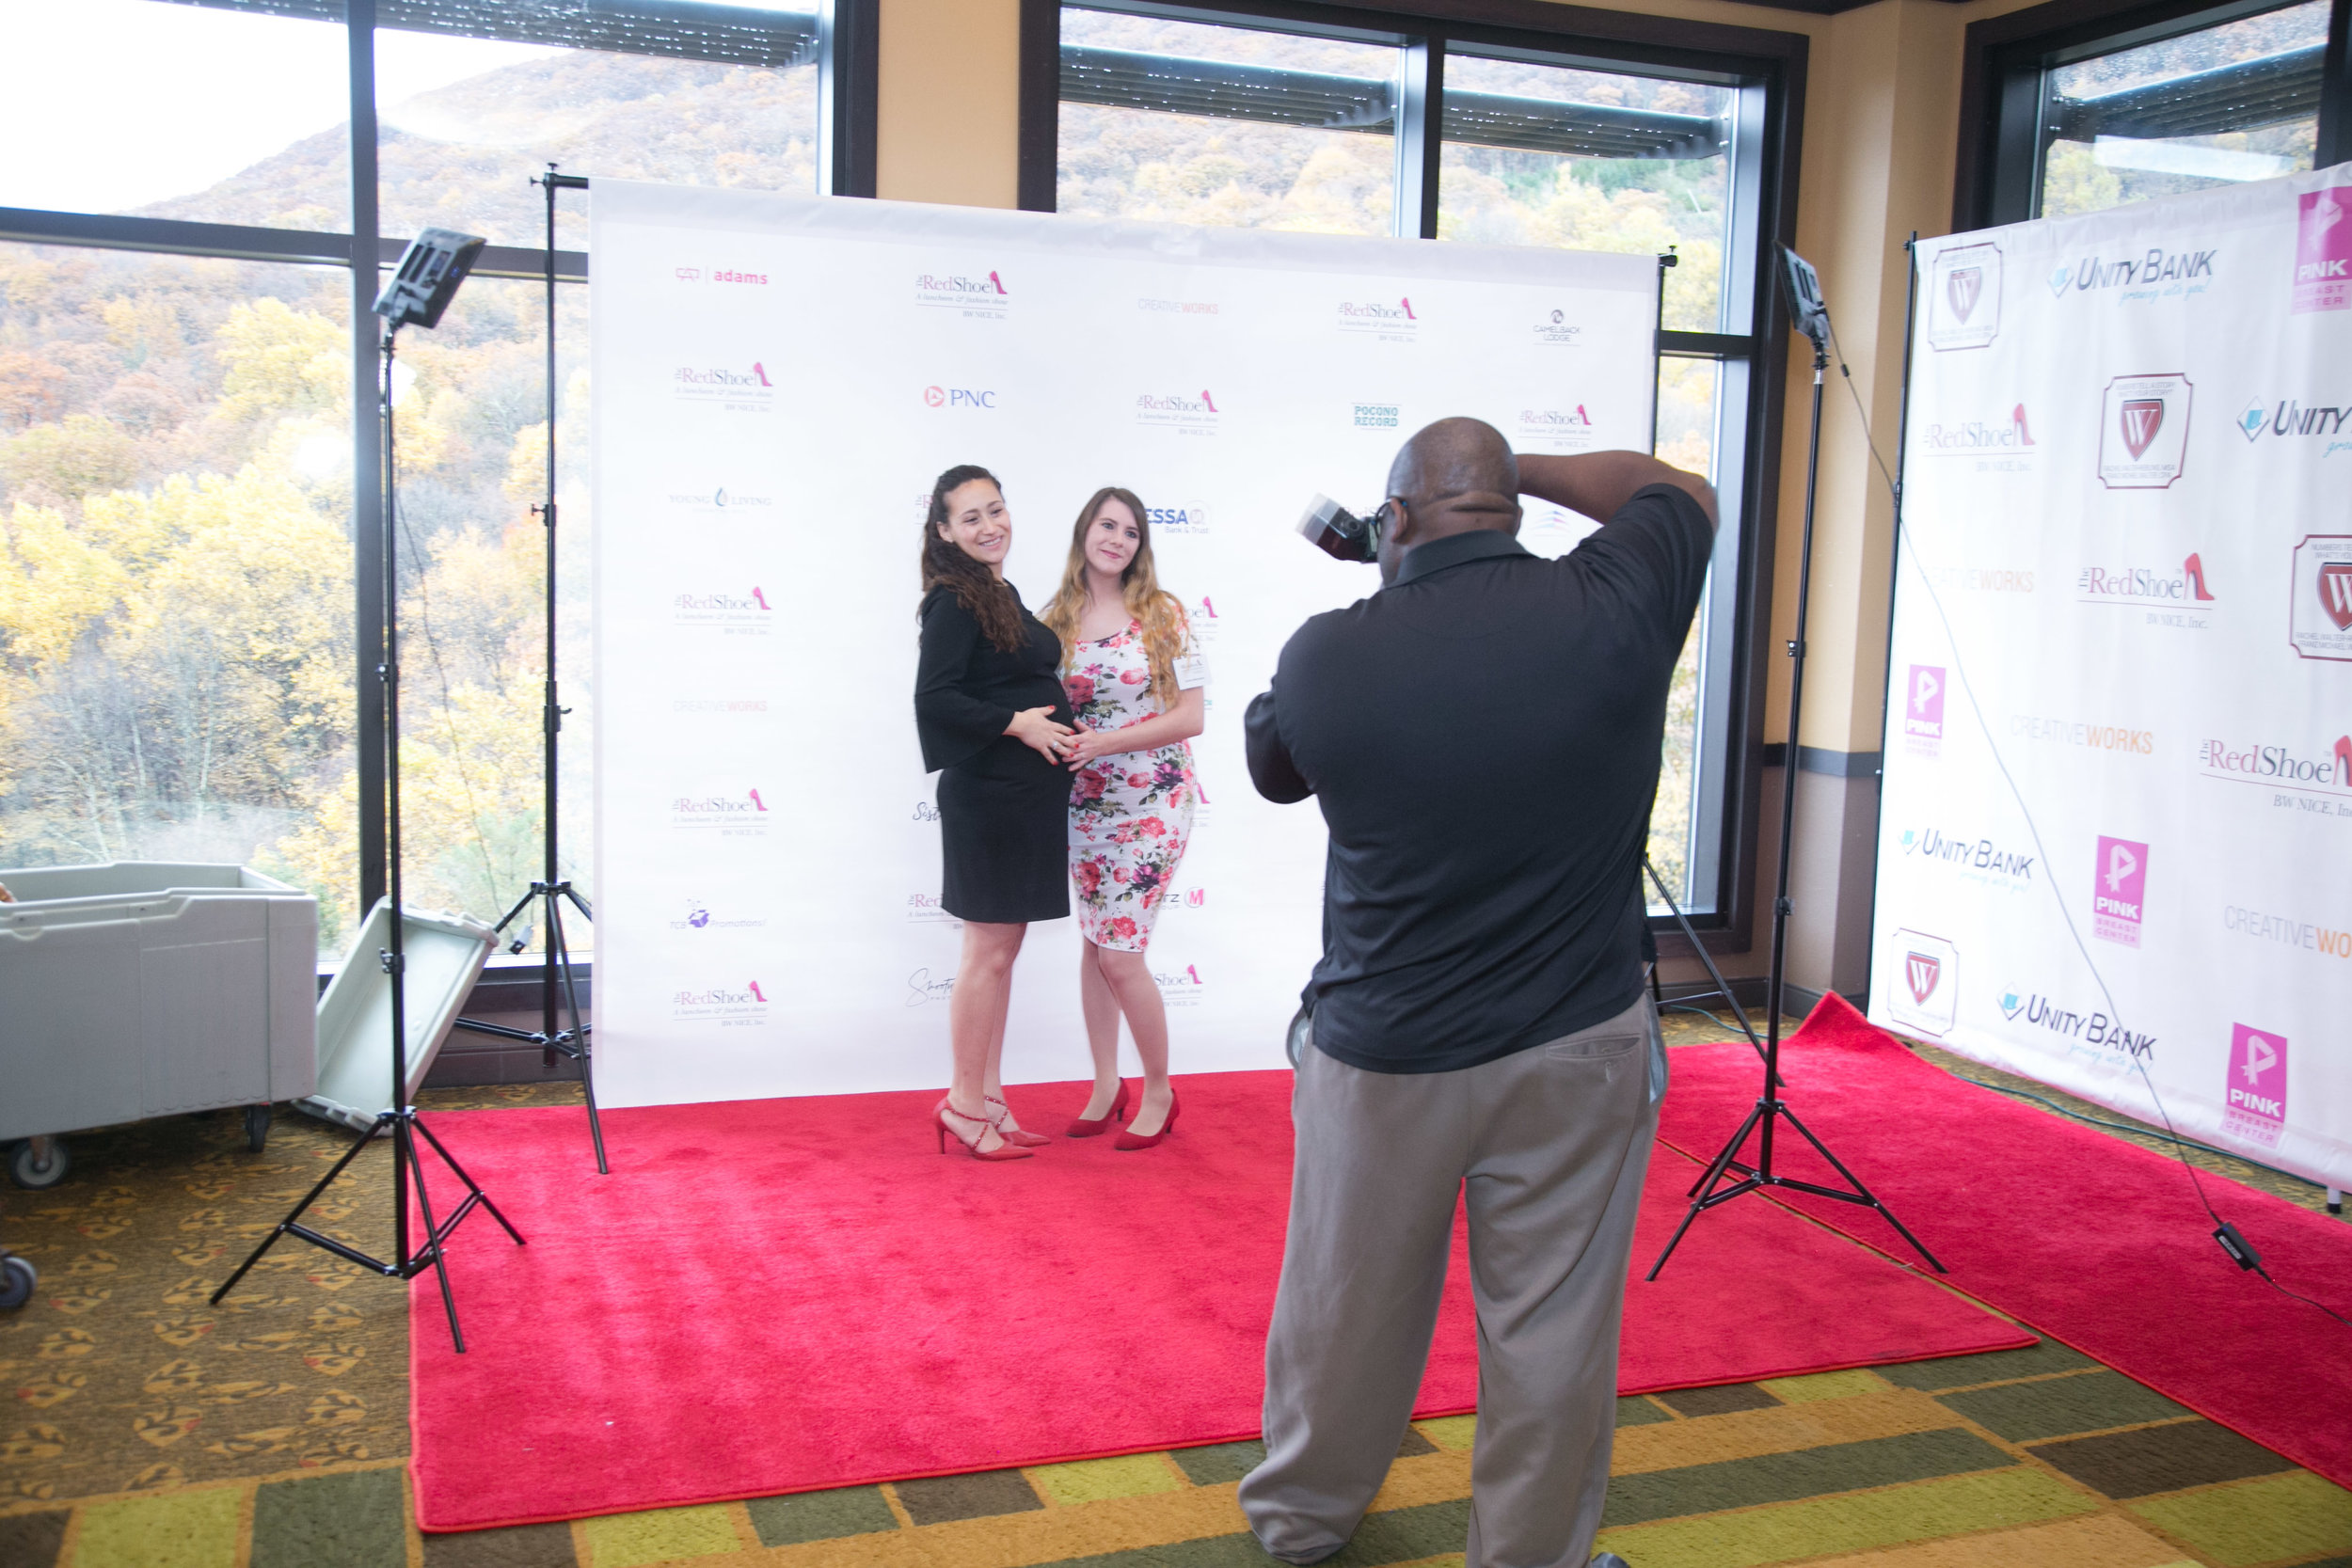 LightMaster-Studios-BWNice-Monroe-Chapter-Red-Shoes-Event-Camelback-lodge-2018-5153.jpg